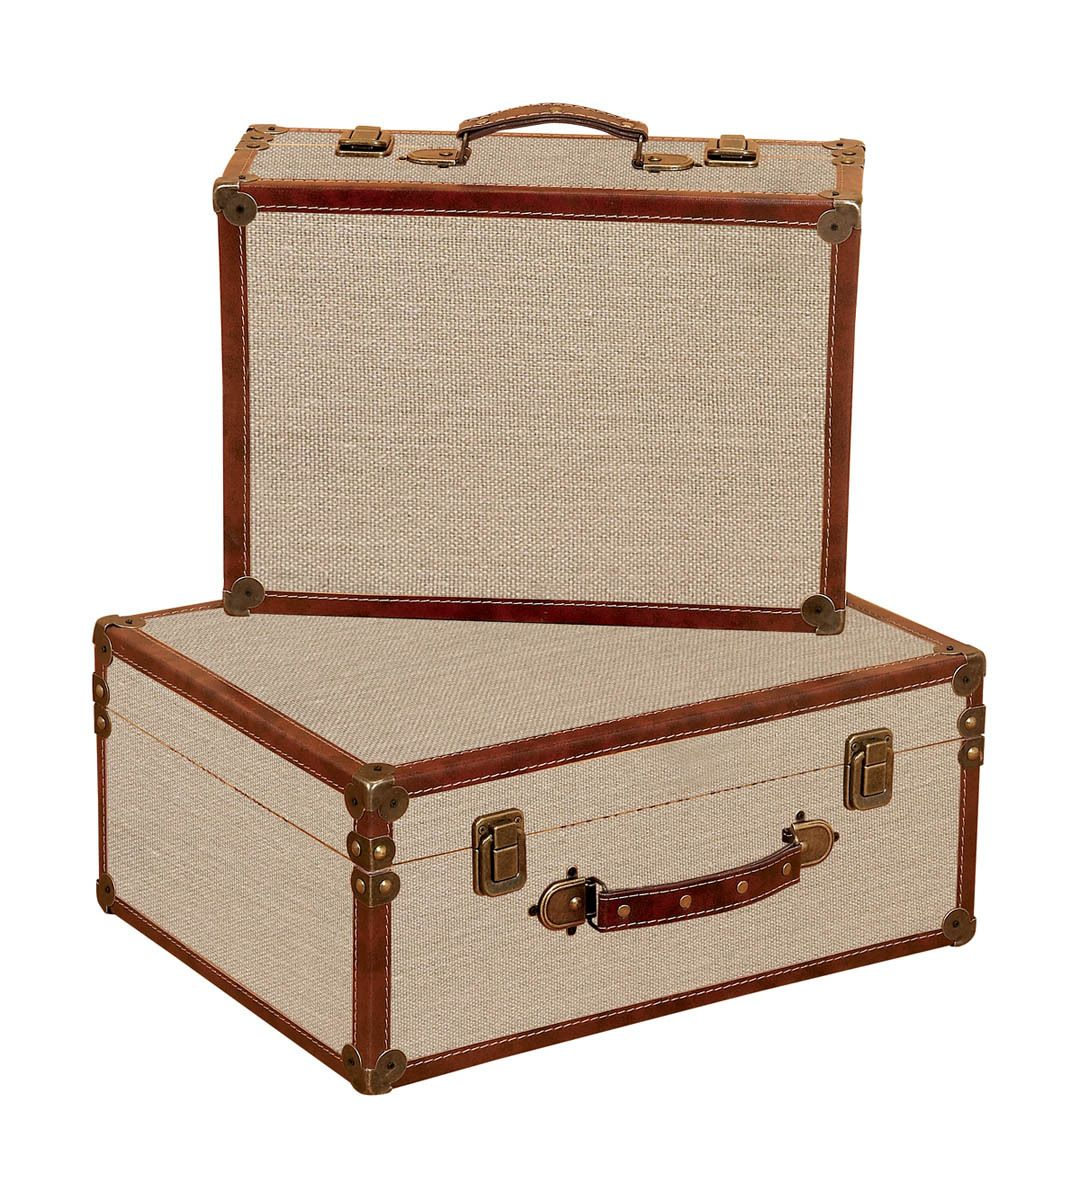 Decorative Luggage Box Burlap Decorative Suitcases  Diy Projects To Try  Pinterest